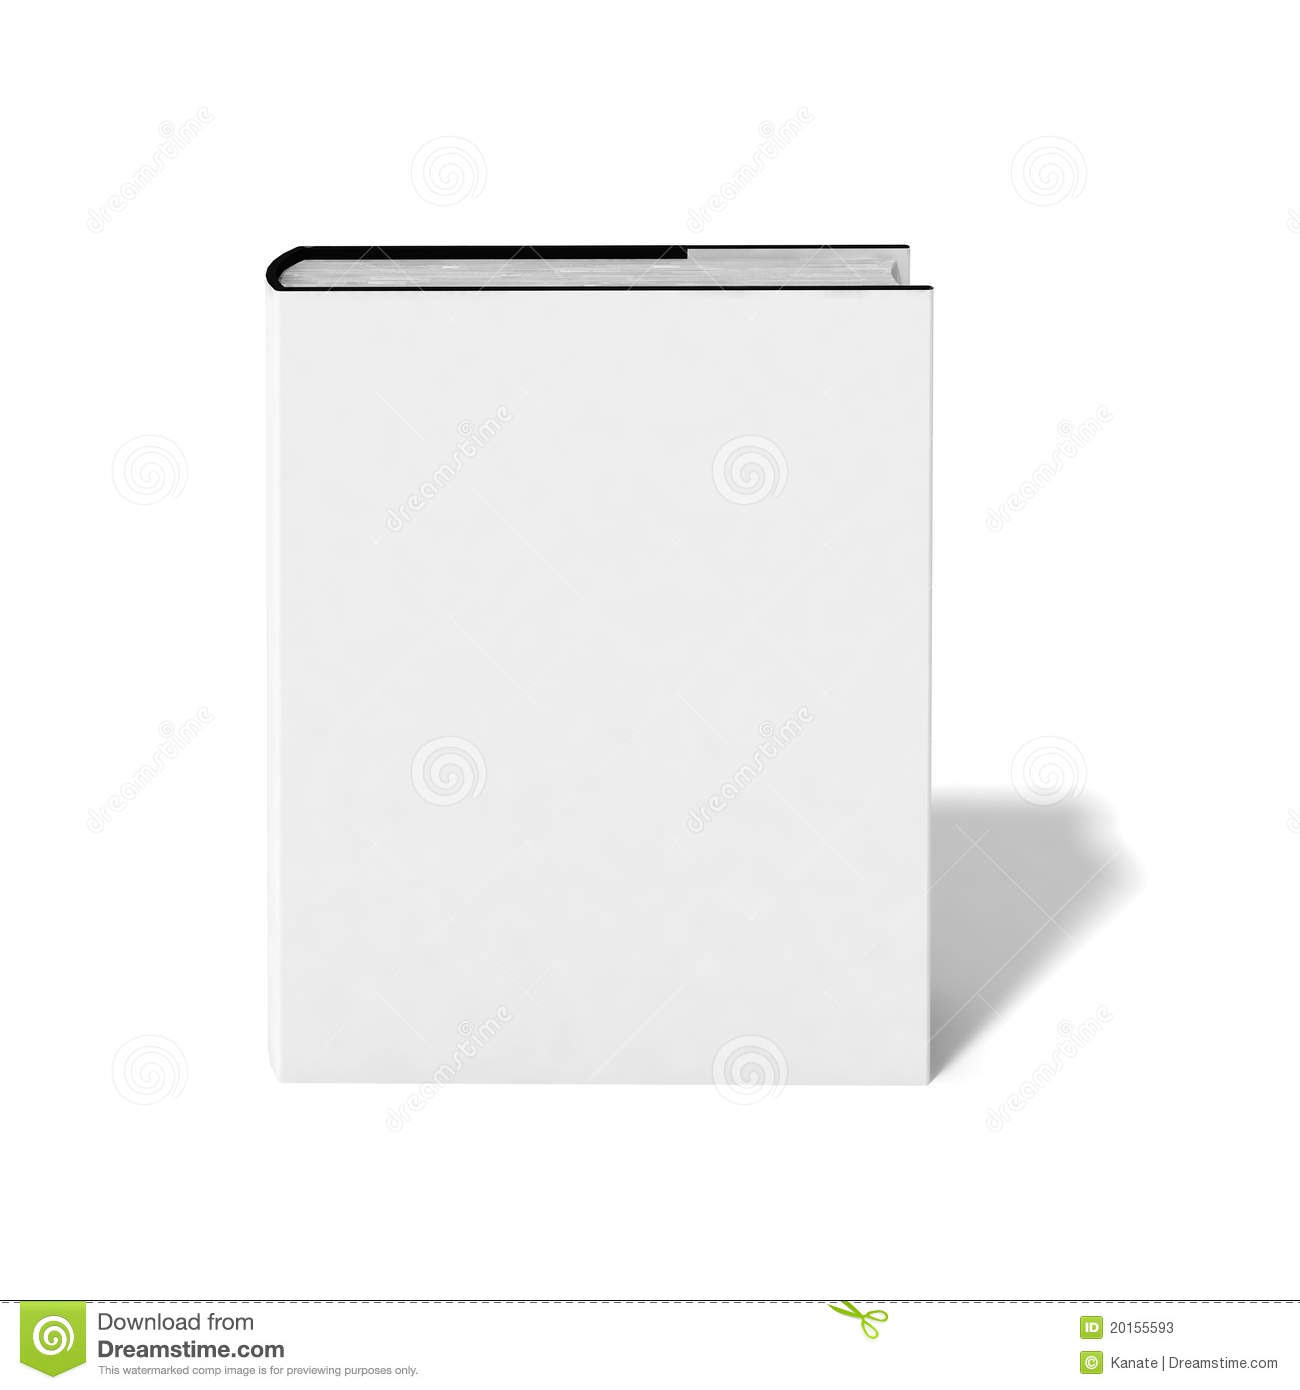 Blank Book With White Cover Stock Photos - Image: 20155593